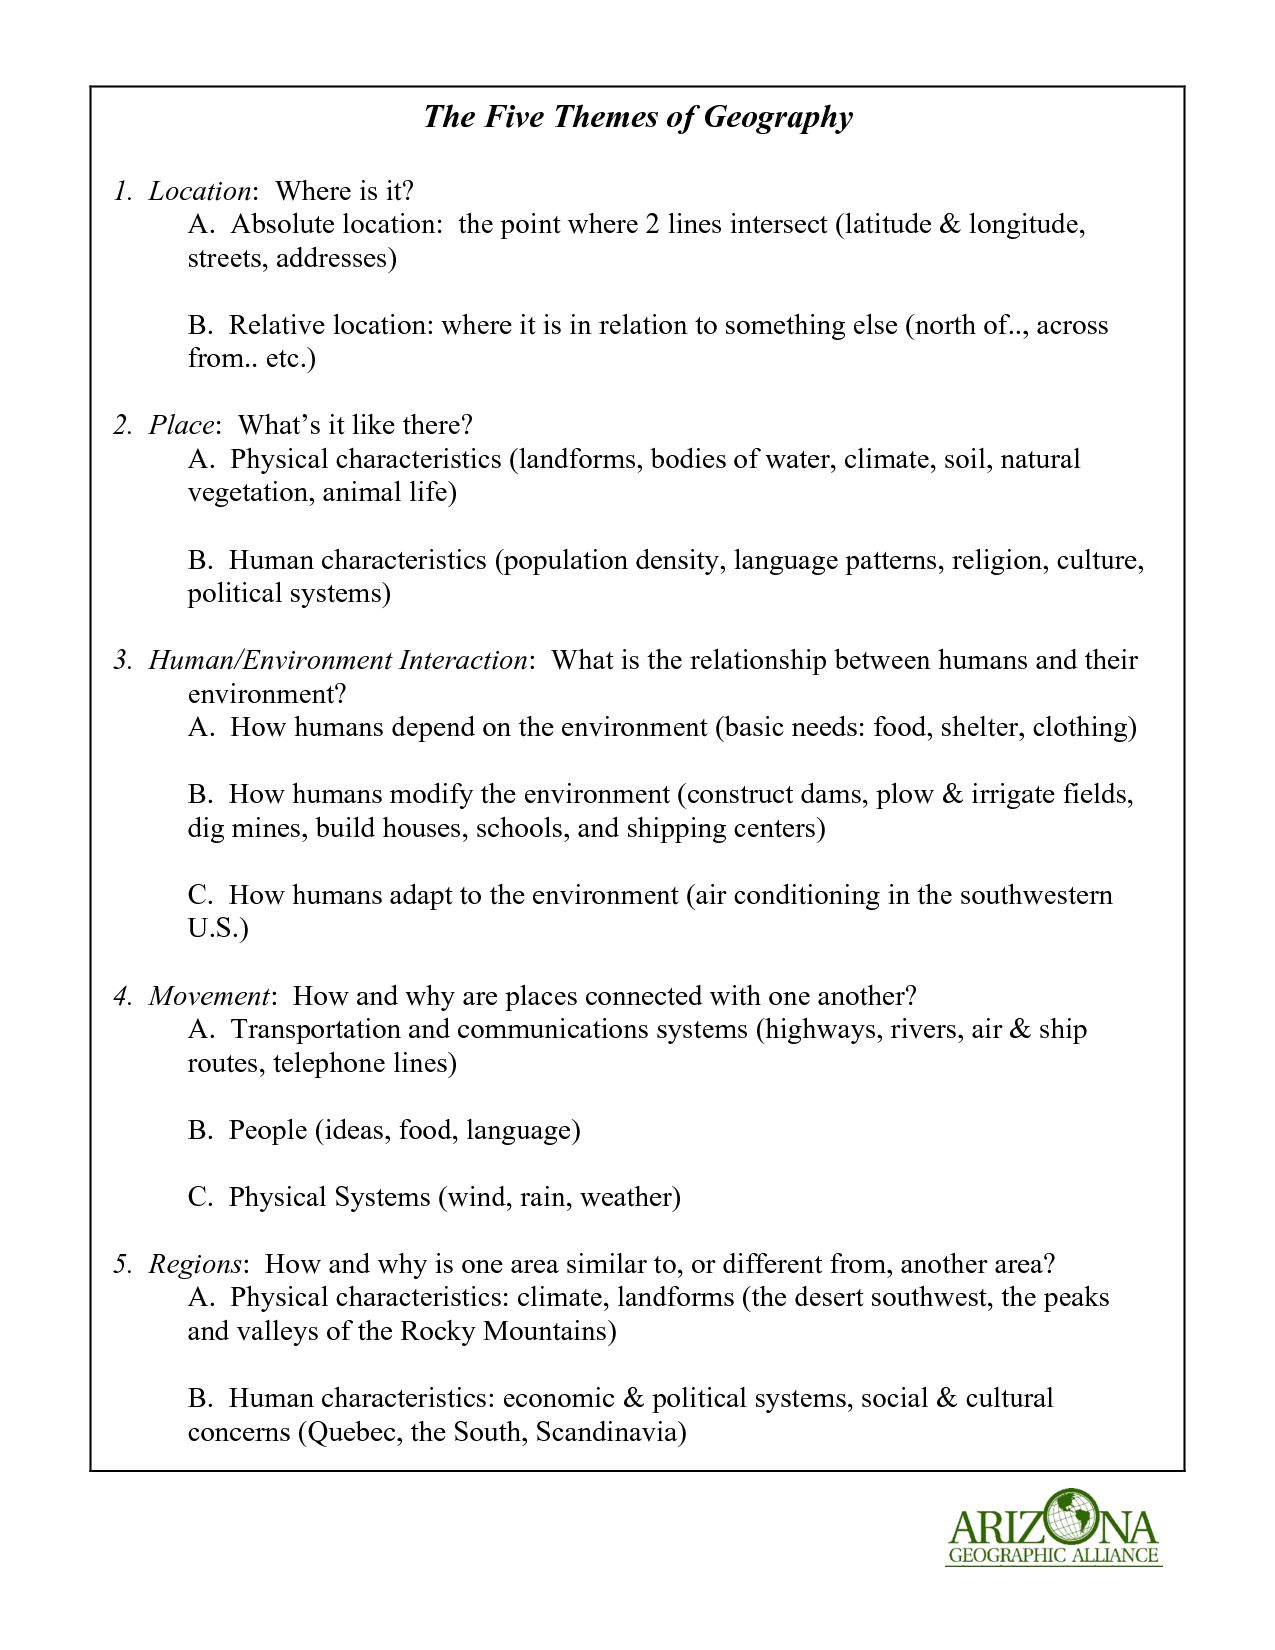 medium resolution of 5 Themes of Geography Printable   18 Best Images of Five Themes Of  Geography Worksheets…   Geography worksheets